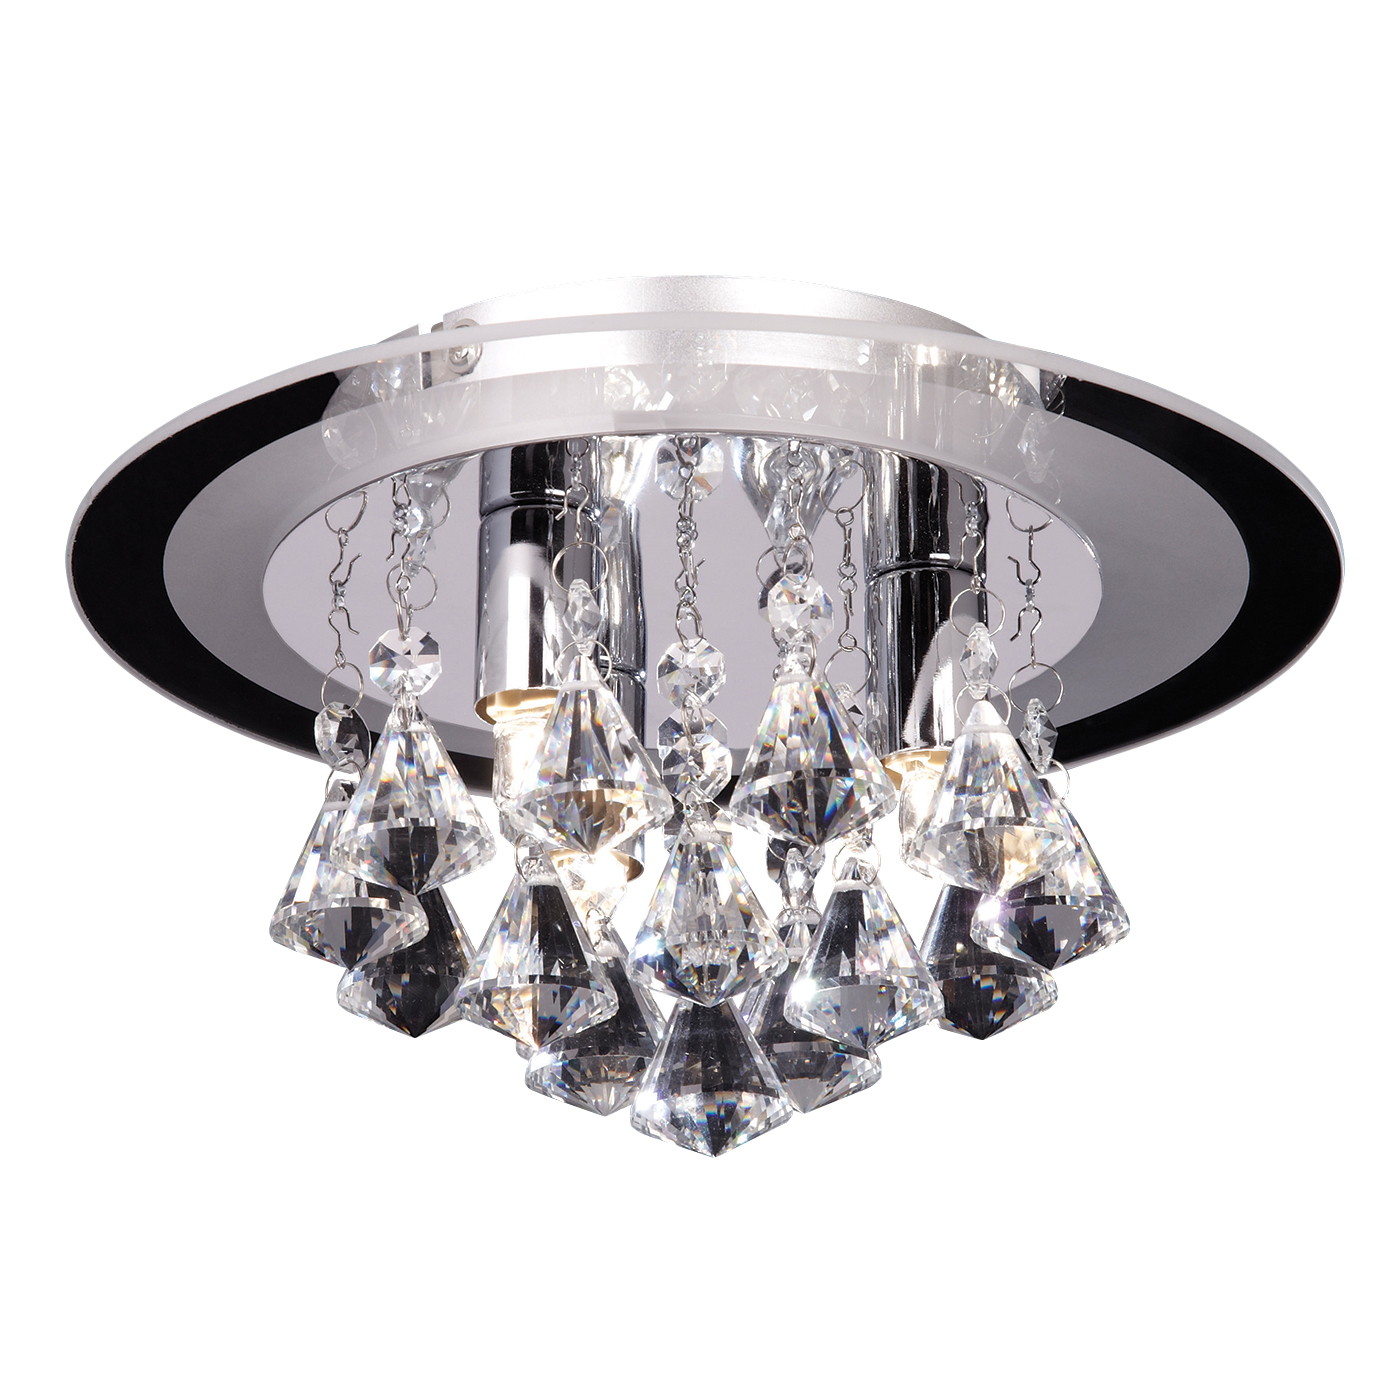 Endon Renner flush ceiling light 3x 33W Clear crystal (k9) drops & chrome effect Thumbnail 1